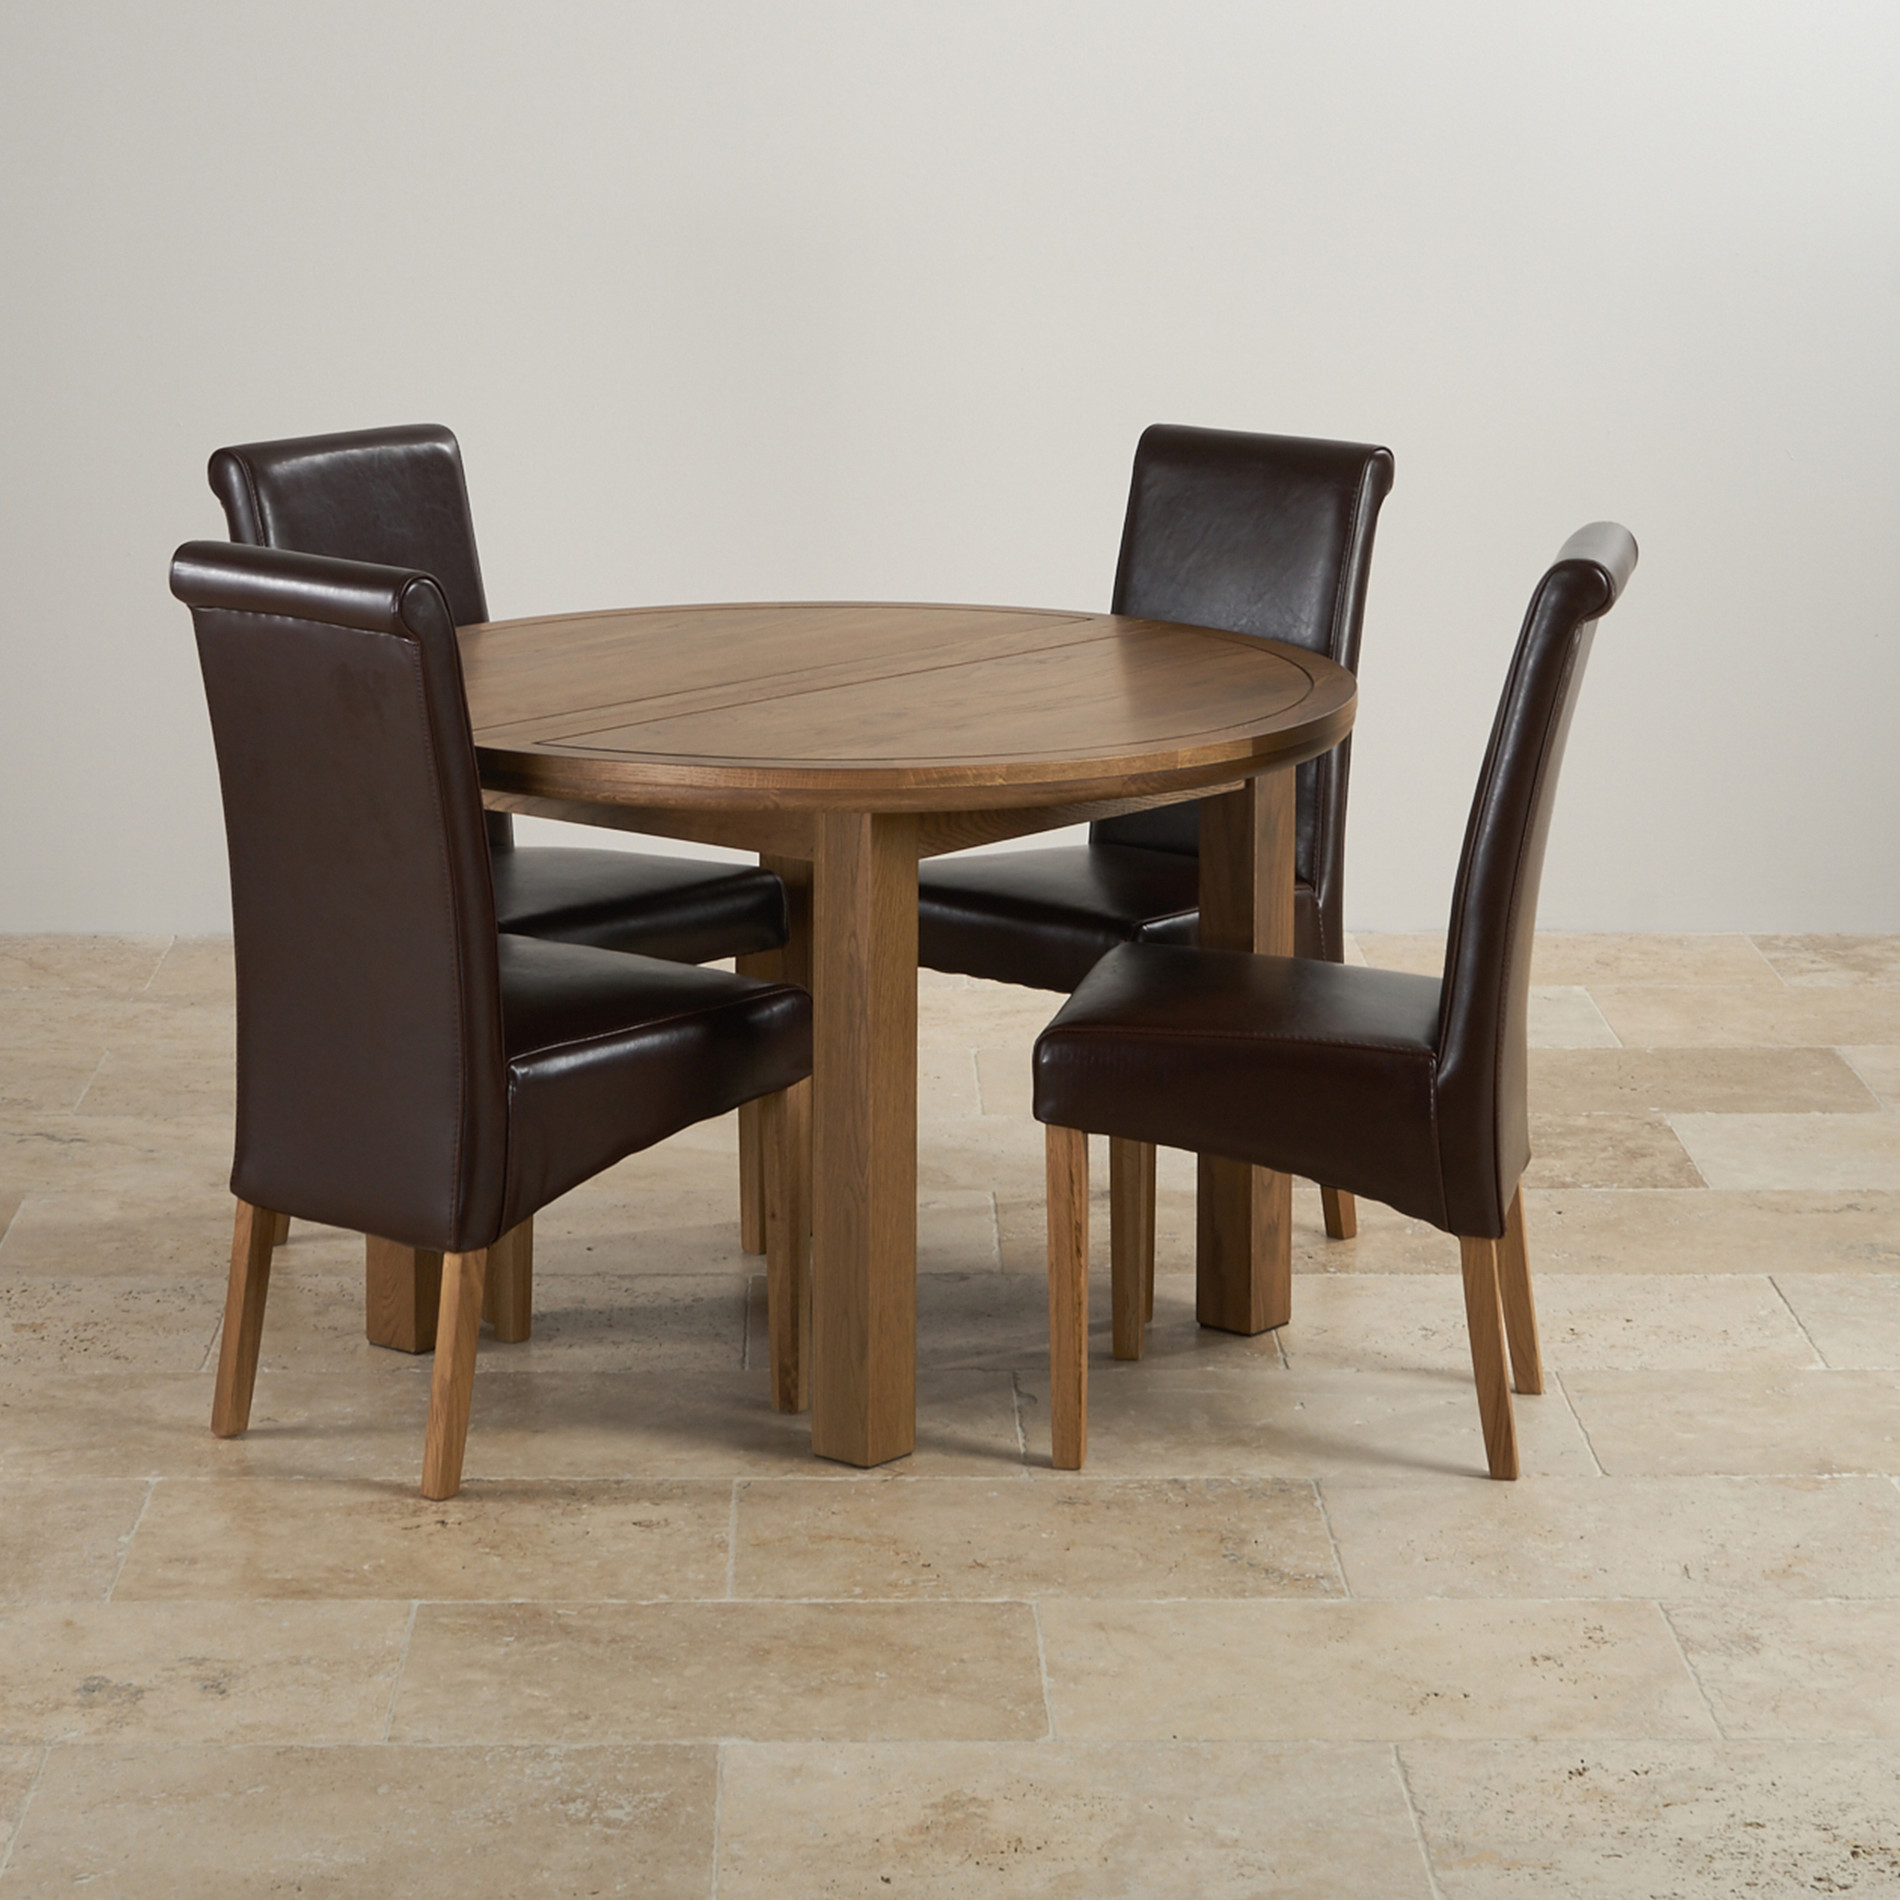 knightsbridge round extending dining set dining table 4 chairs. Black Bedroom Furniture Sets. Home Design Ideas